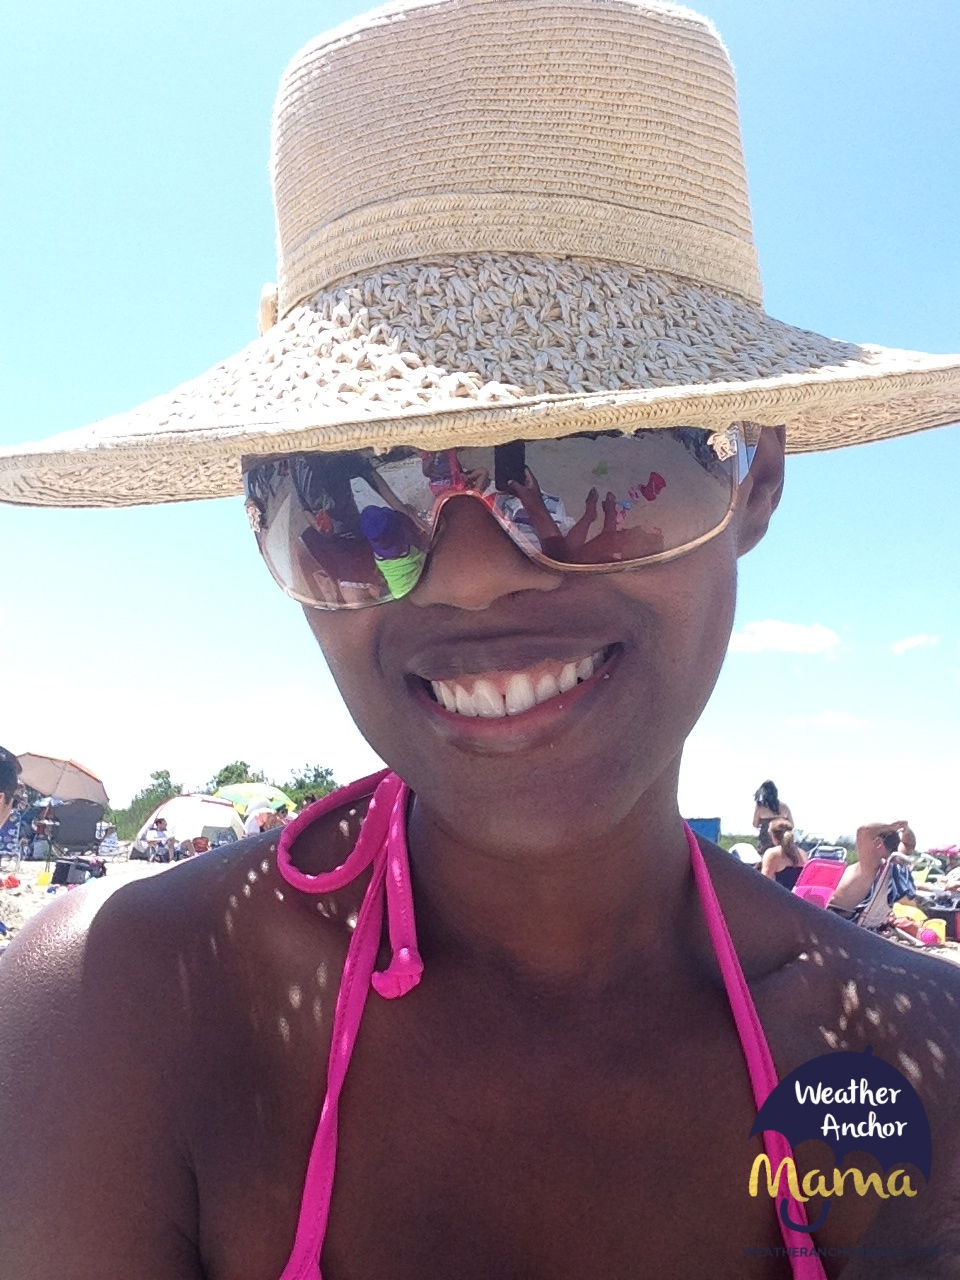 Can Black People Get Sunburn? | Weather Anchor Mama